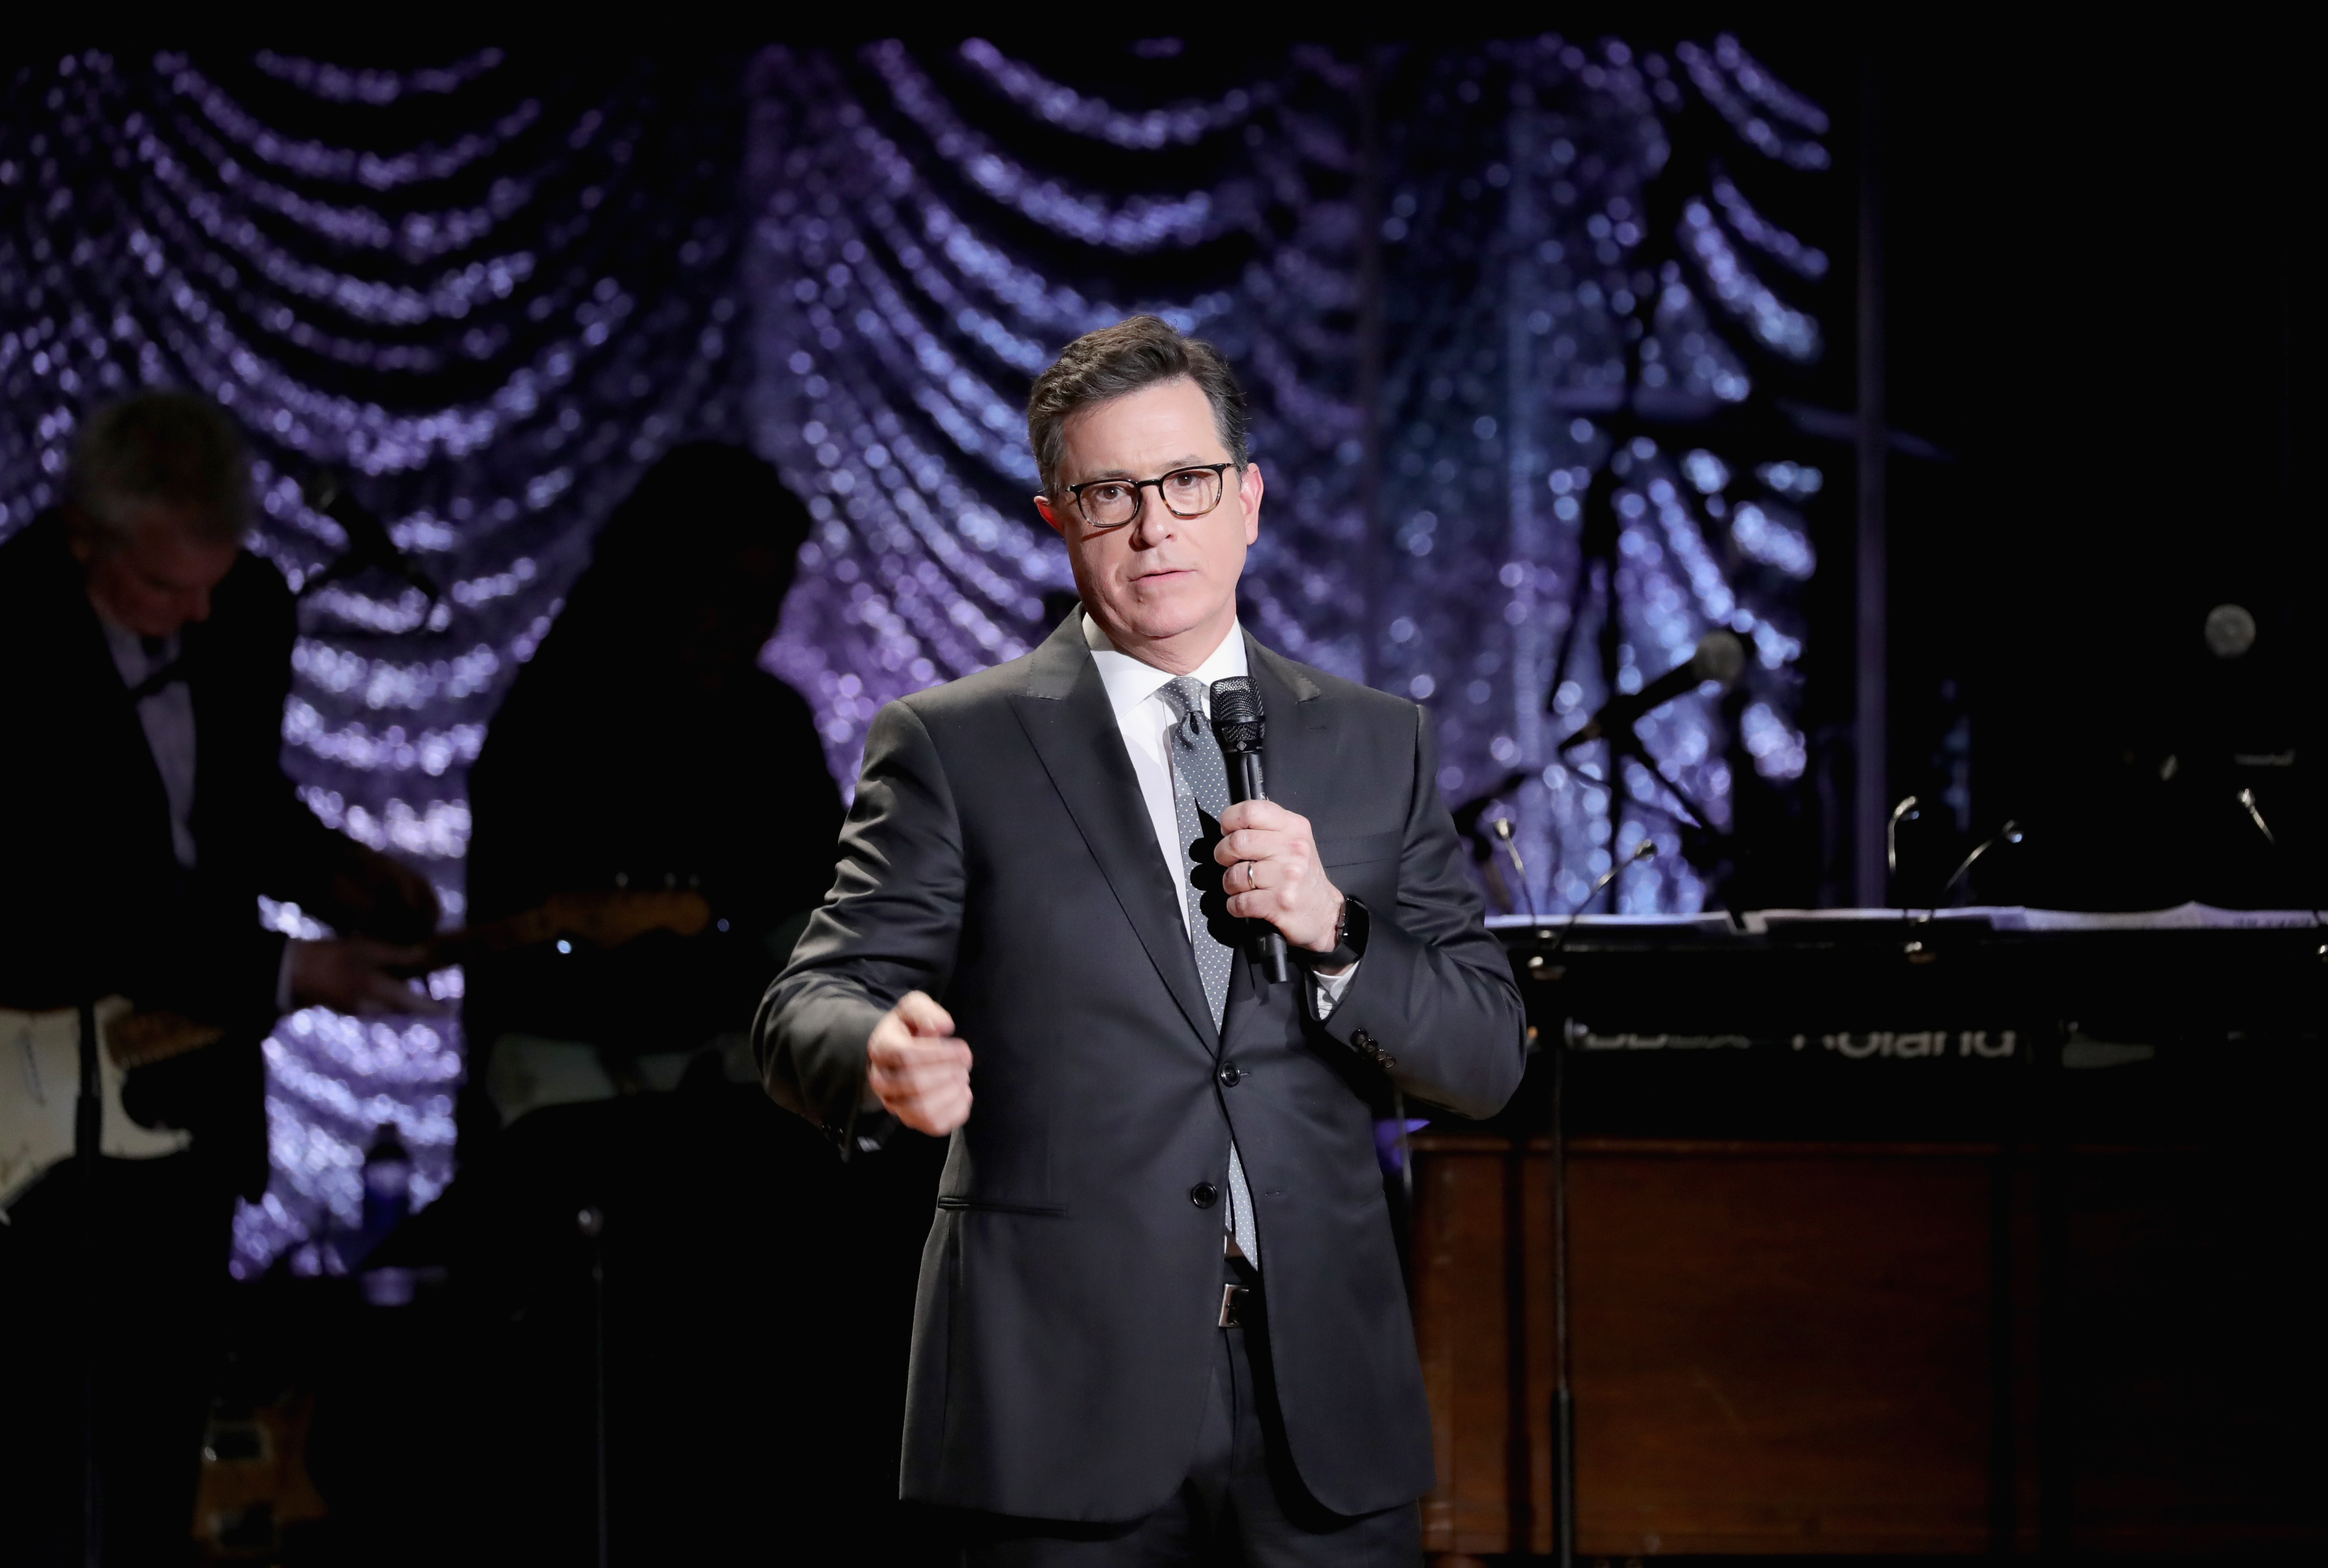 Comedian Stephen Colbert speaks onstage during Lincoln Center's American Songbook Gala at Alice Tully Hall on Feb. 1, 2017 in New York City.